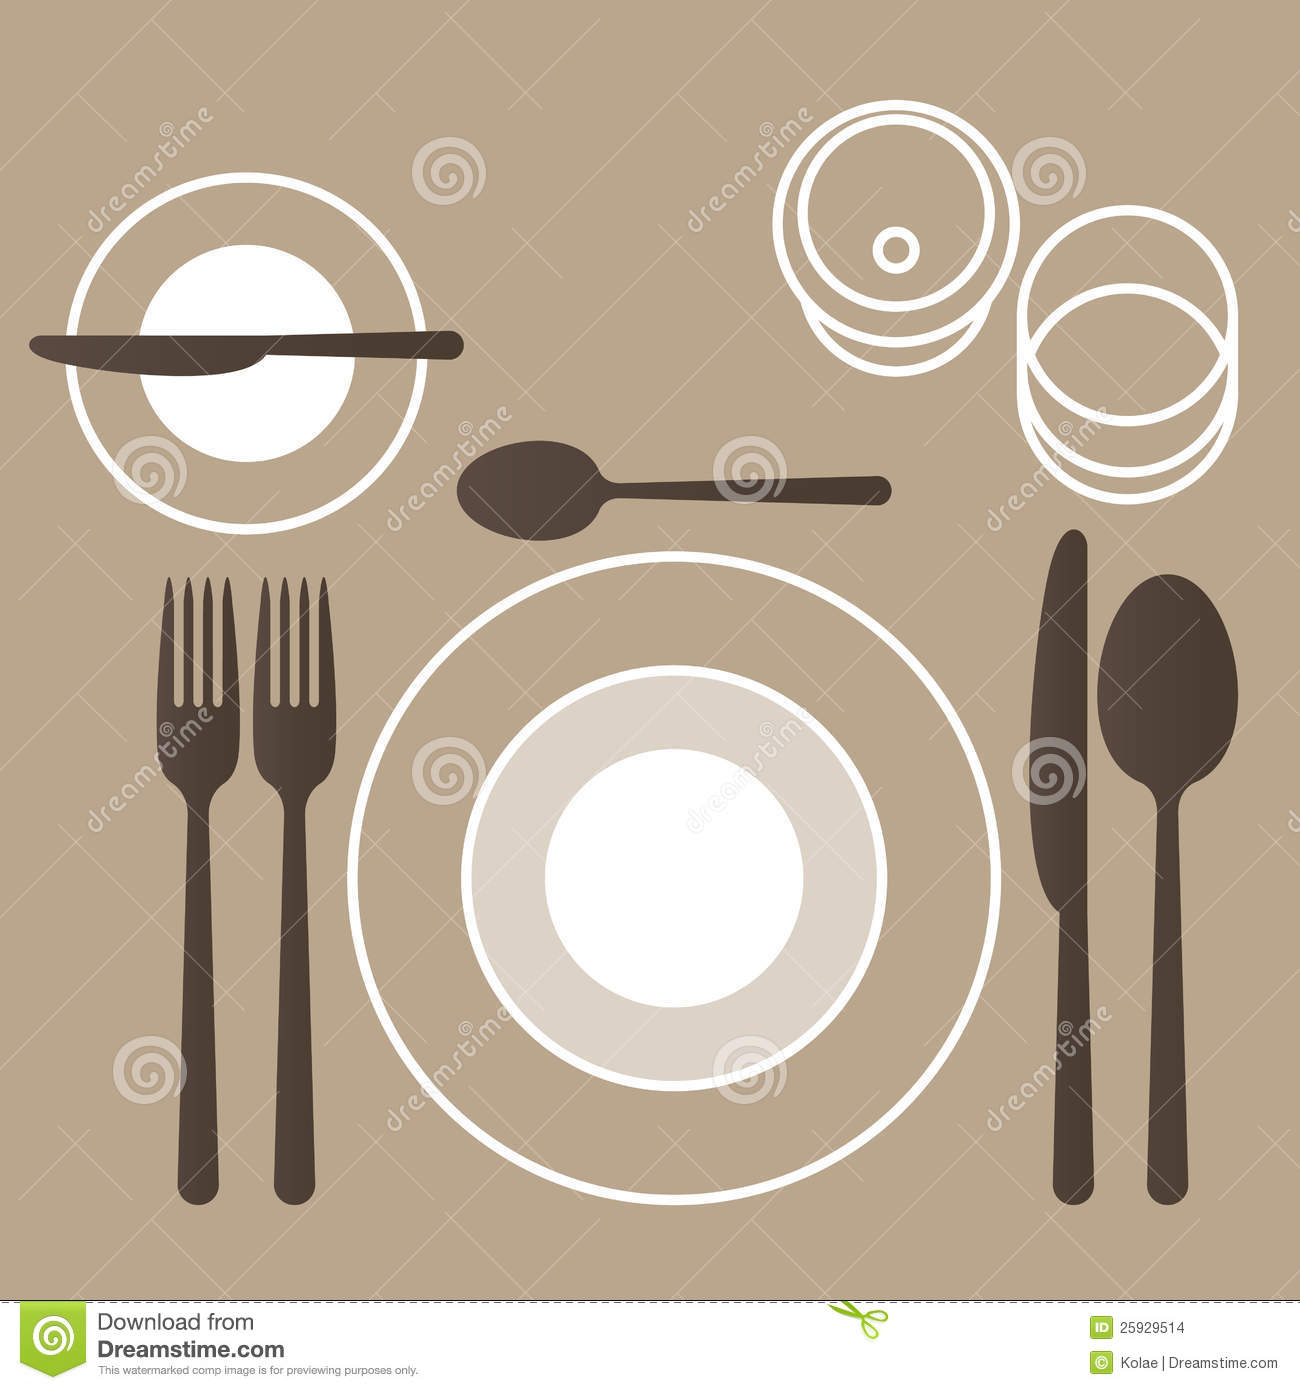 Place setting with plate, fork, spoon and knife.